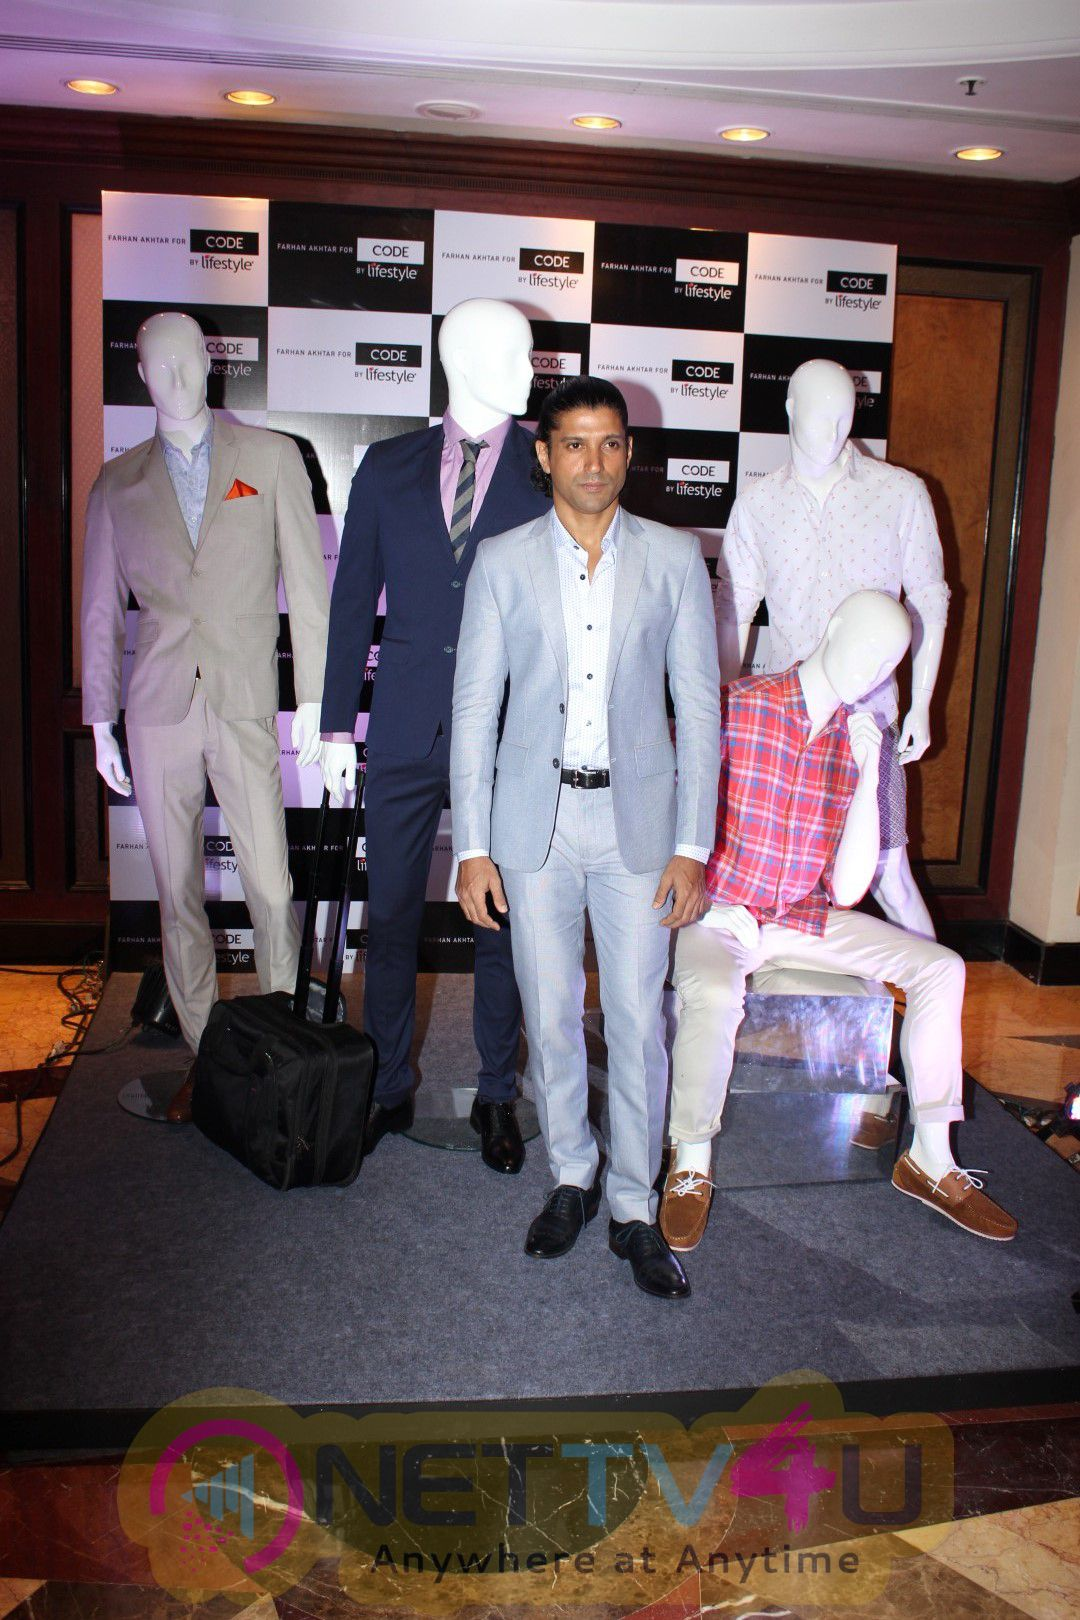 Farhan Akhtar Brand Ambassador For Code By Lifestyle Exclusive Photos